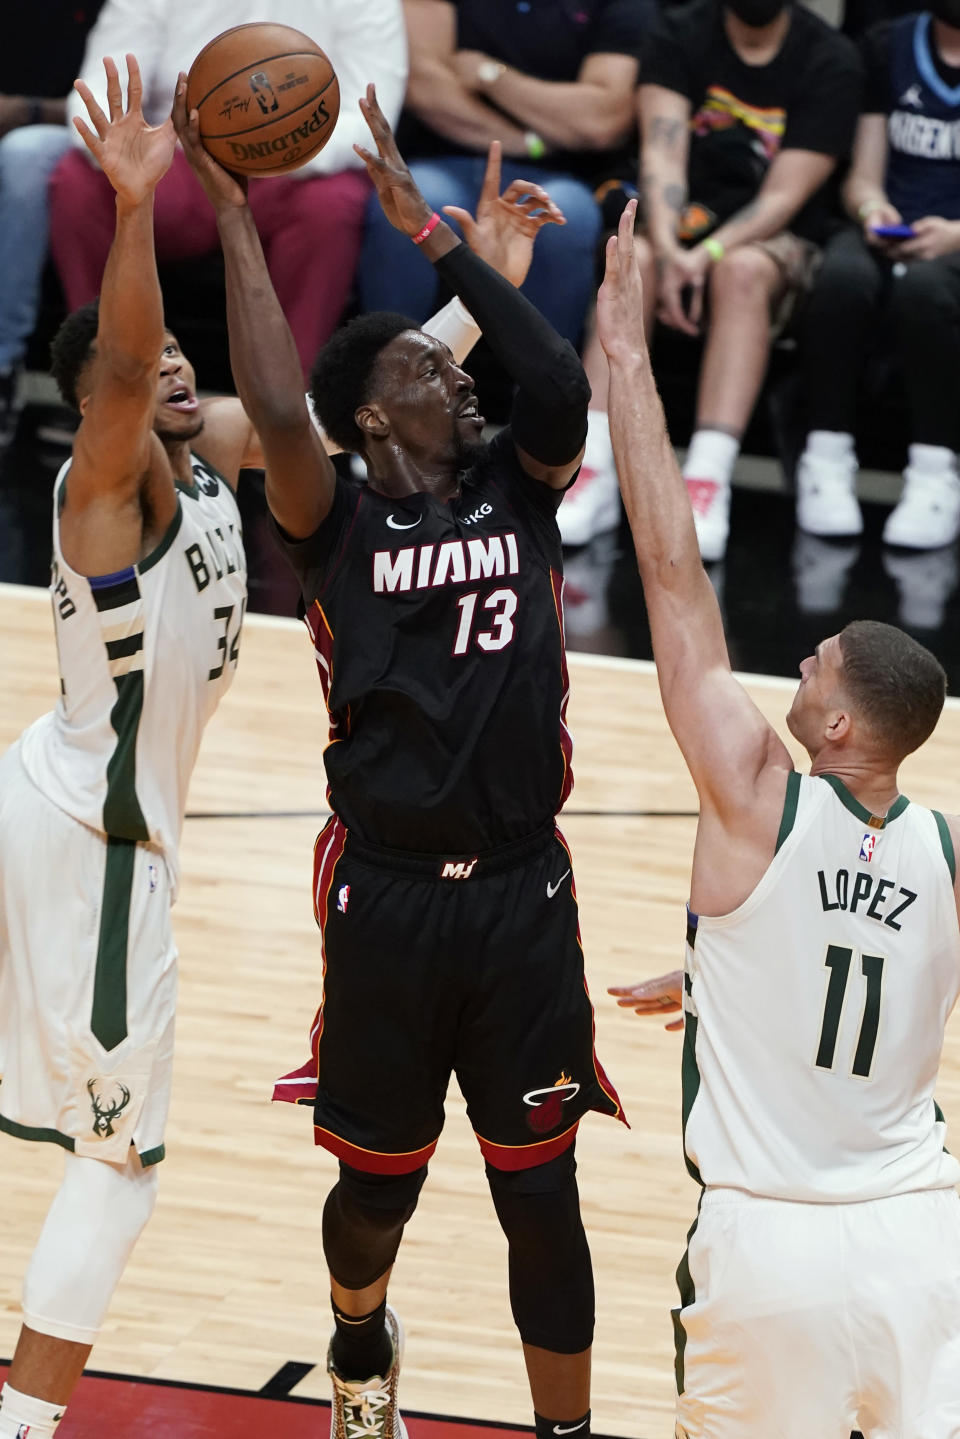 Miami Heat center Bam Adebayo (13) shoots as Milwaukee Bucks center Brook Lopez (11) and forward Giannis Antetokounmpo (34) defend during the first half of Game 3 of an NBA basketball first-round playoff series Thursday, May 27, 2021, in Miami. (AP Photo/Marta Lavandier)